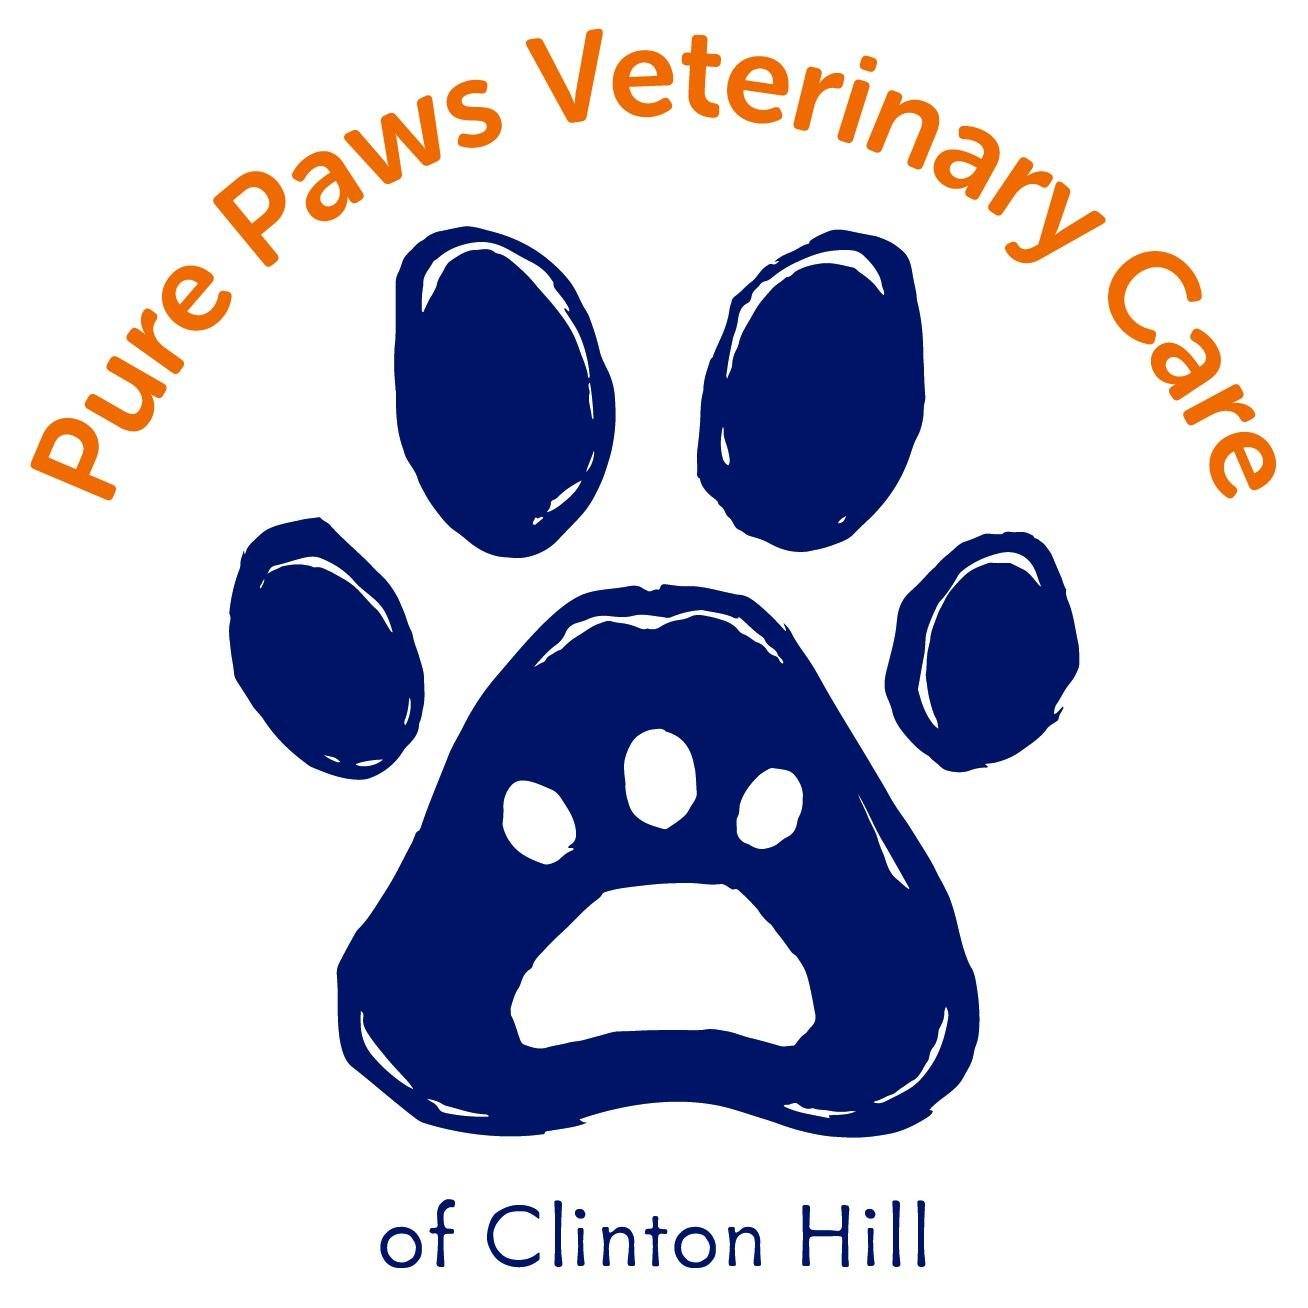 Pure Paws Veterinary Care of Clinton Hill